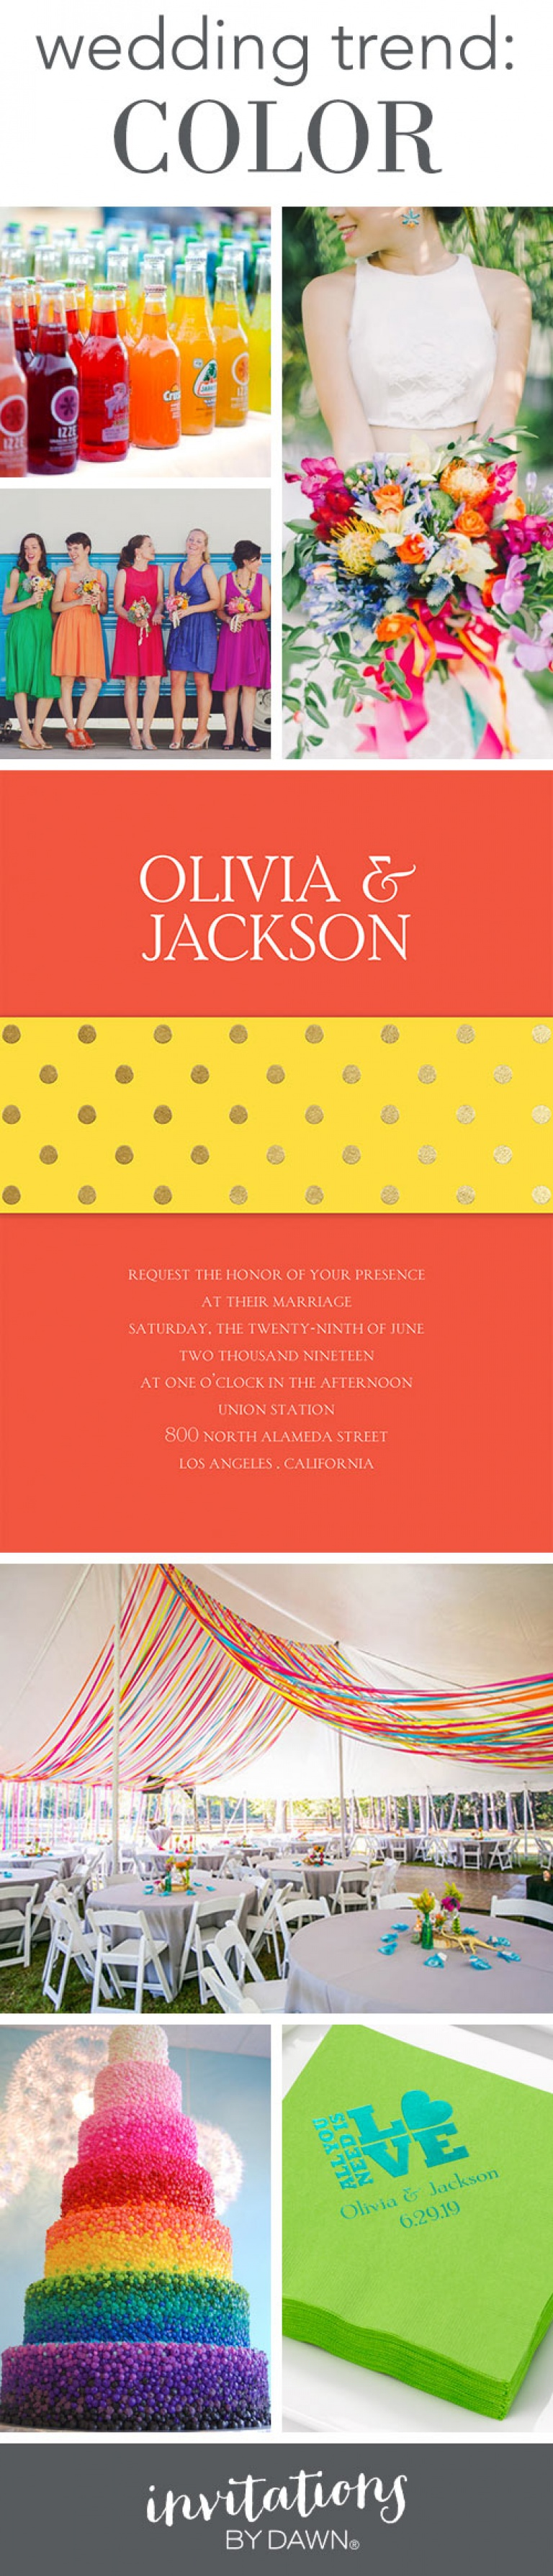 Wedding Trend: COLOR   Wedding trends, Wedding invitation trends and ...